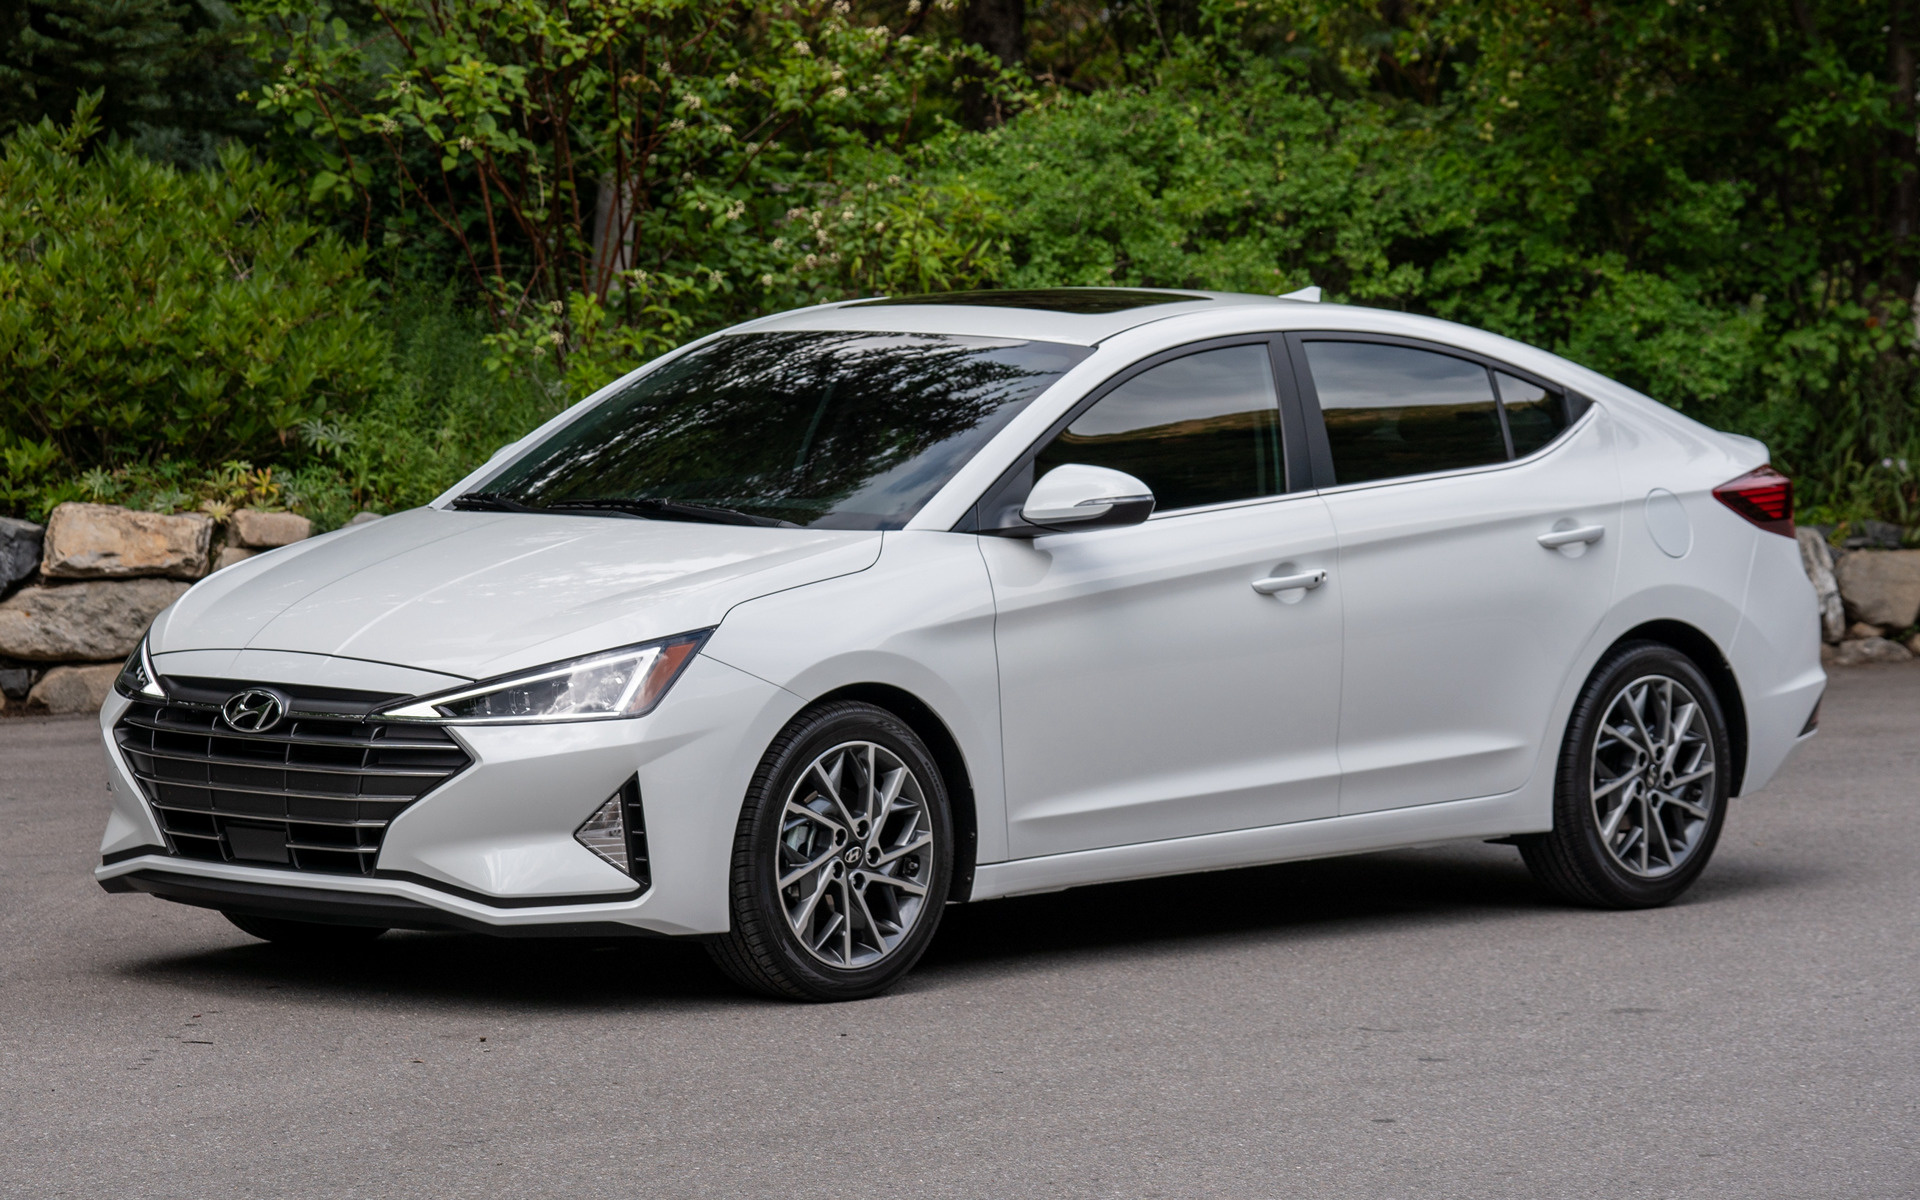 2019 Hyundai Elantra Wallpapers And Hd Images Car Pixel